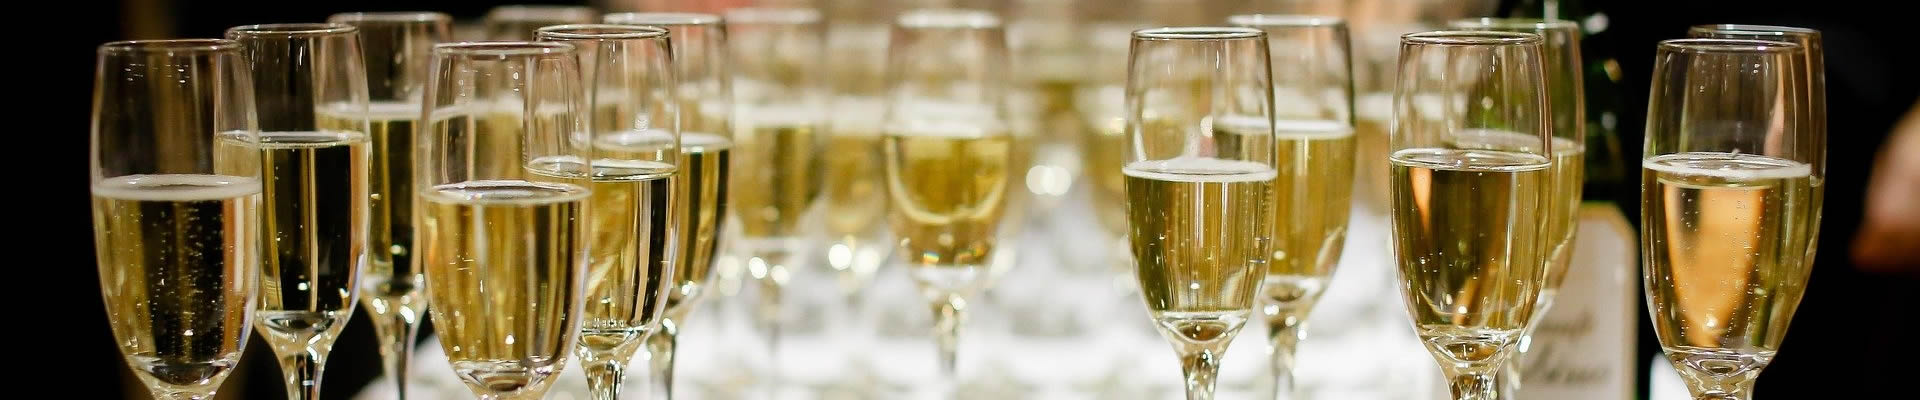 Sparkling wine for party or wedding